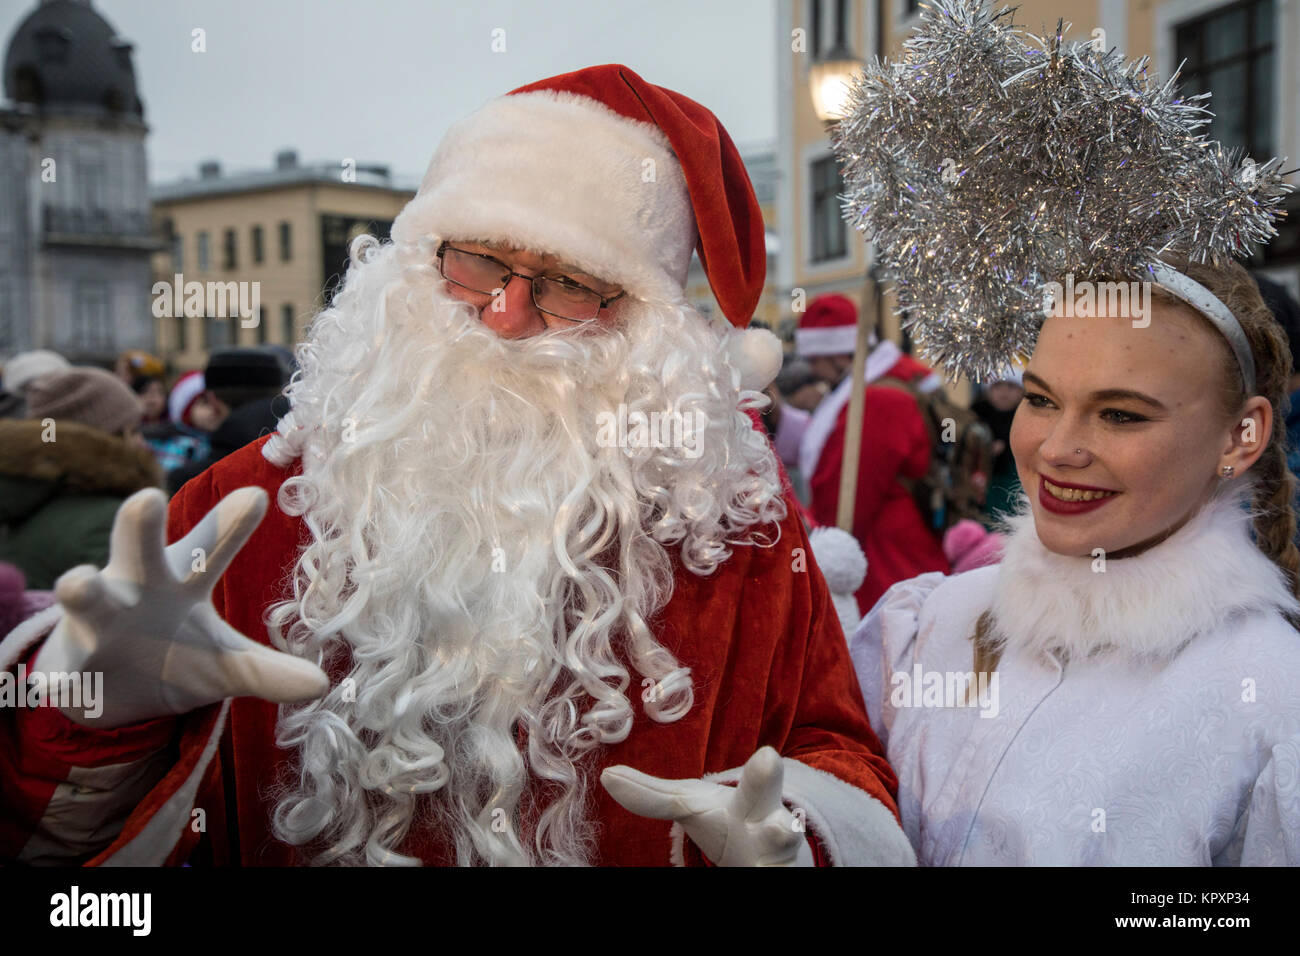 American santa claus and russian snow maiden takes part of